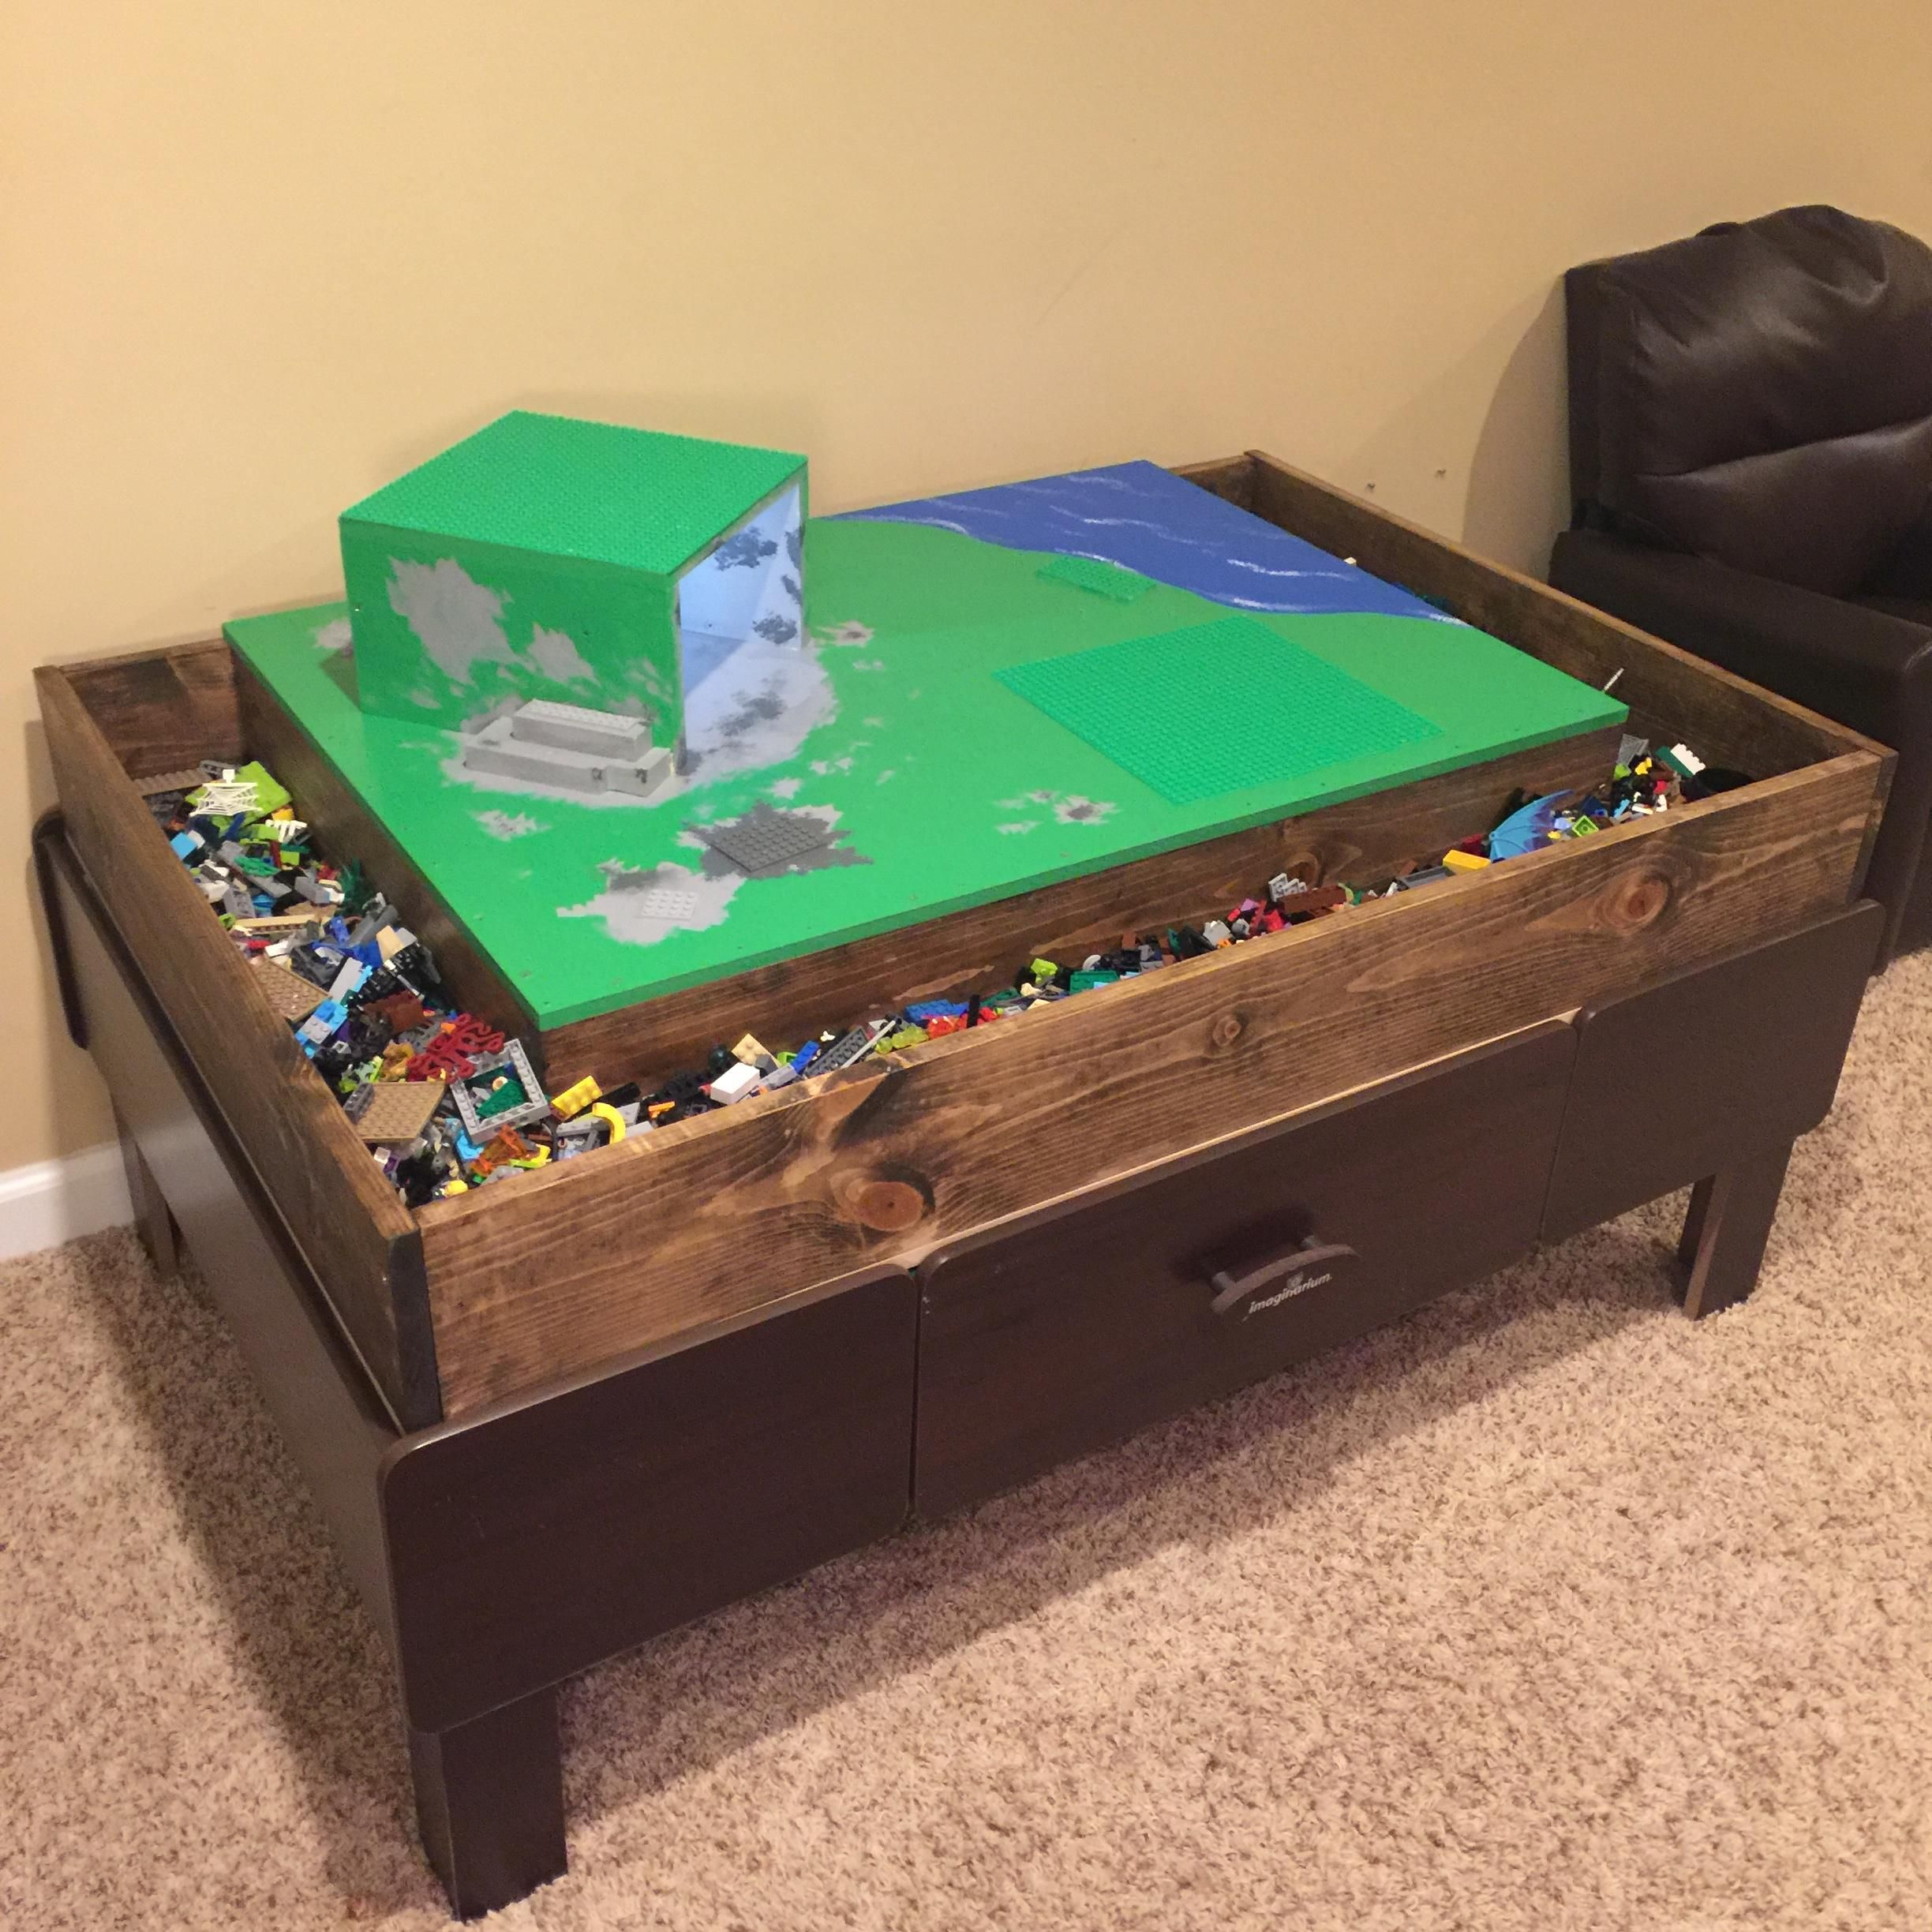 Train Table To Lego Table Conversion Lego Table Lego Table Diy Kids Bedroom Designs